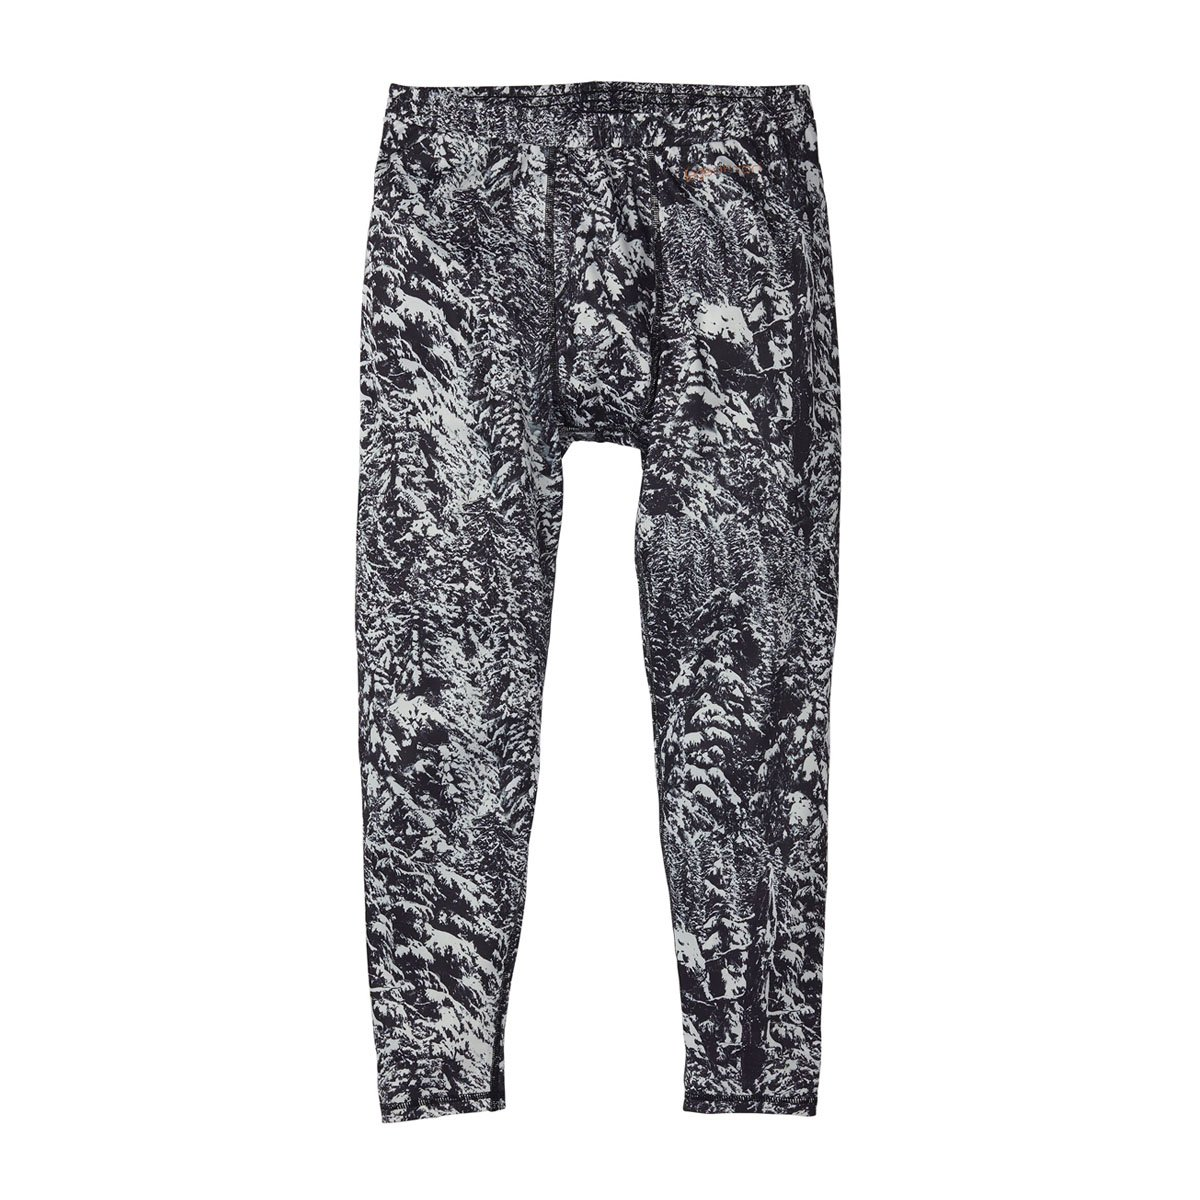 AK POWER GRID PANT